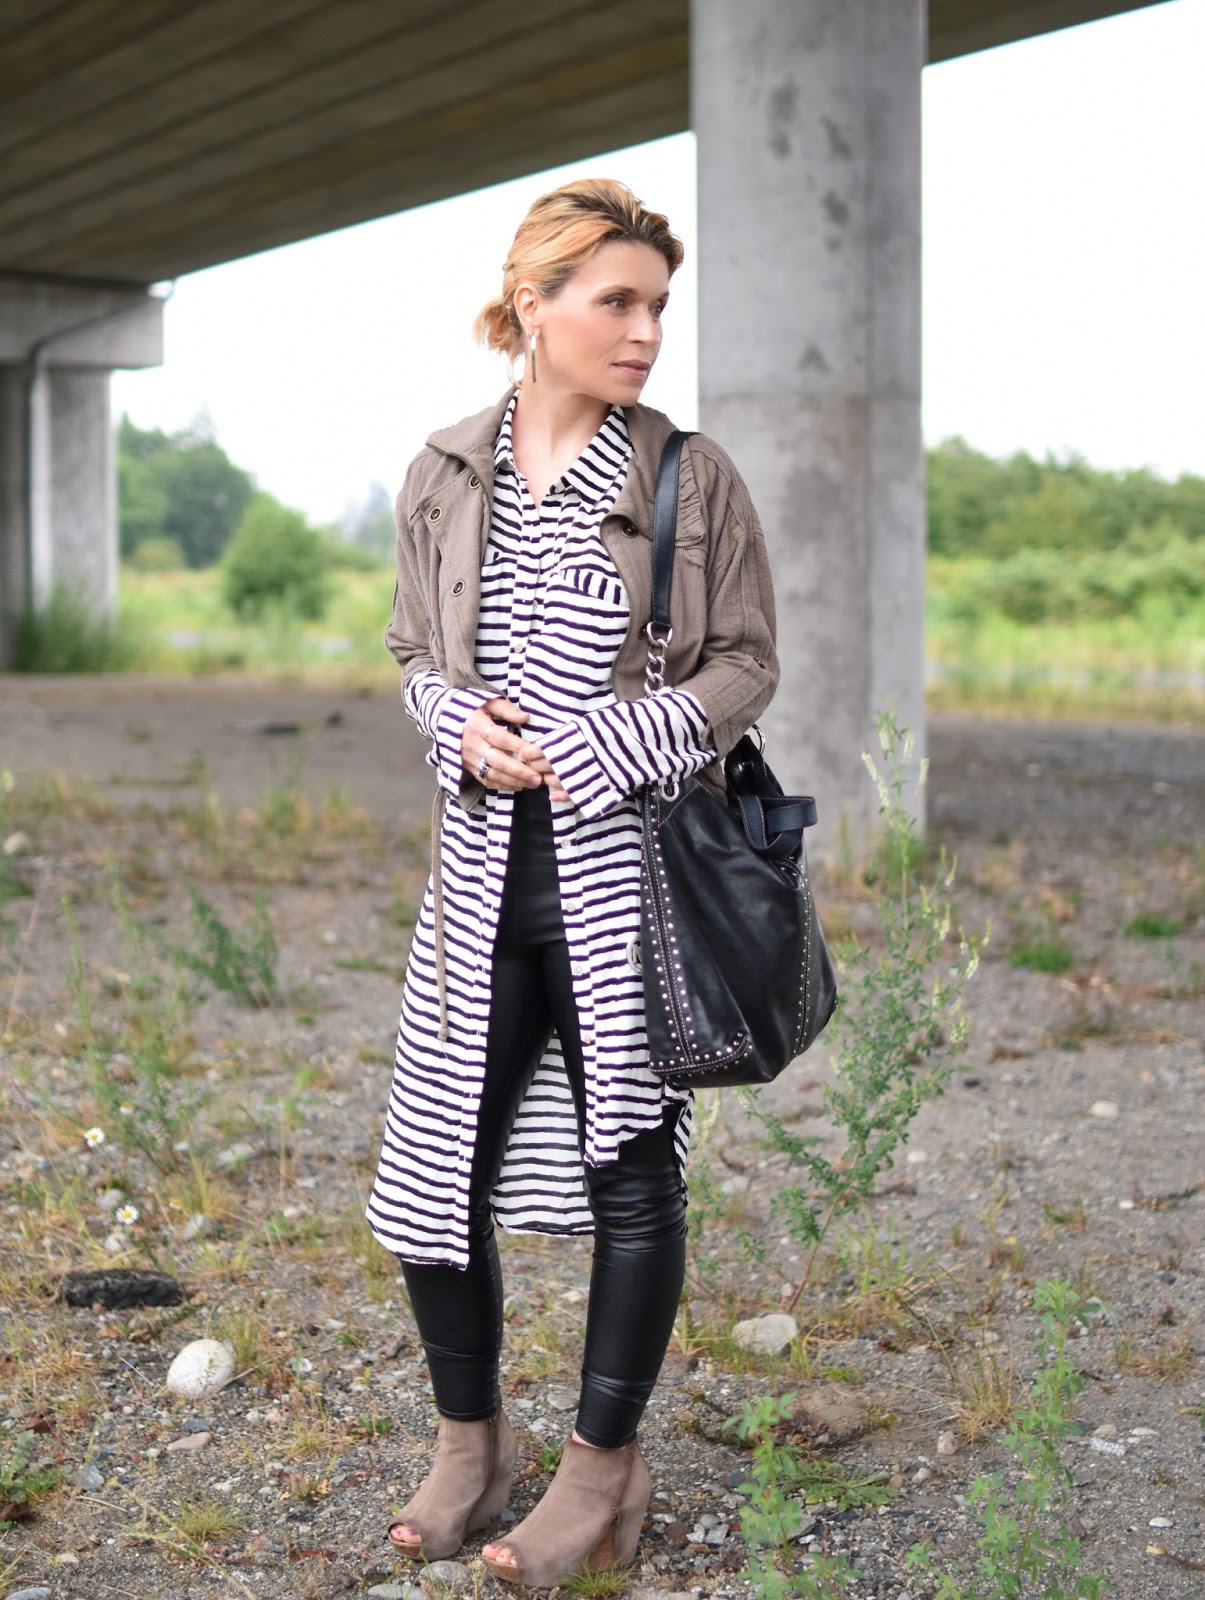 styling a striped shirtdress with vegan leather leggings, a bomber jacket, wedge heels, and an MK bag